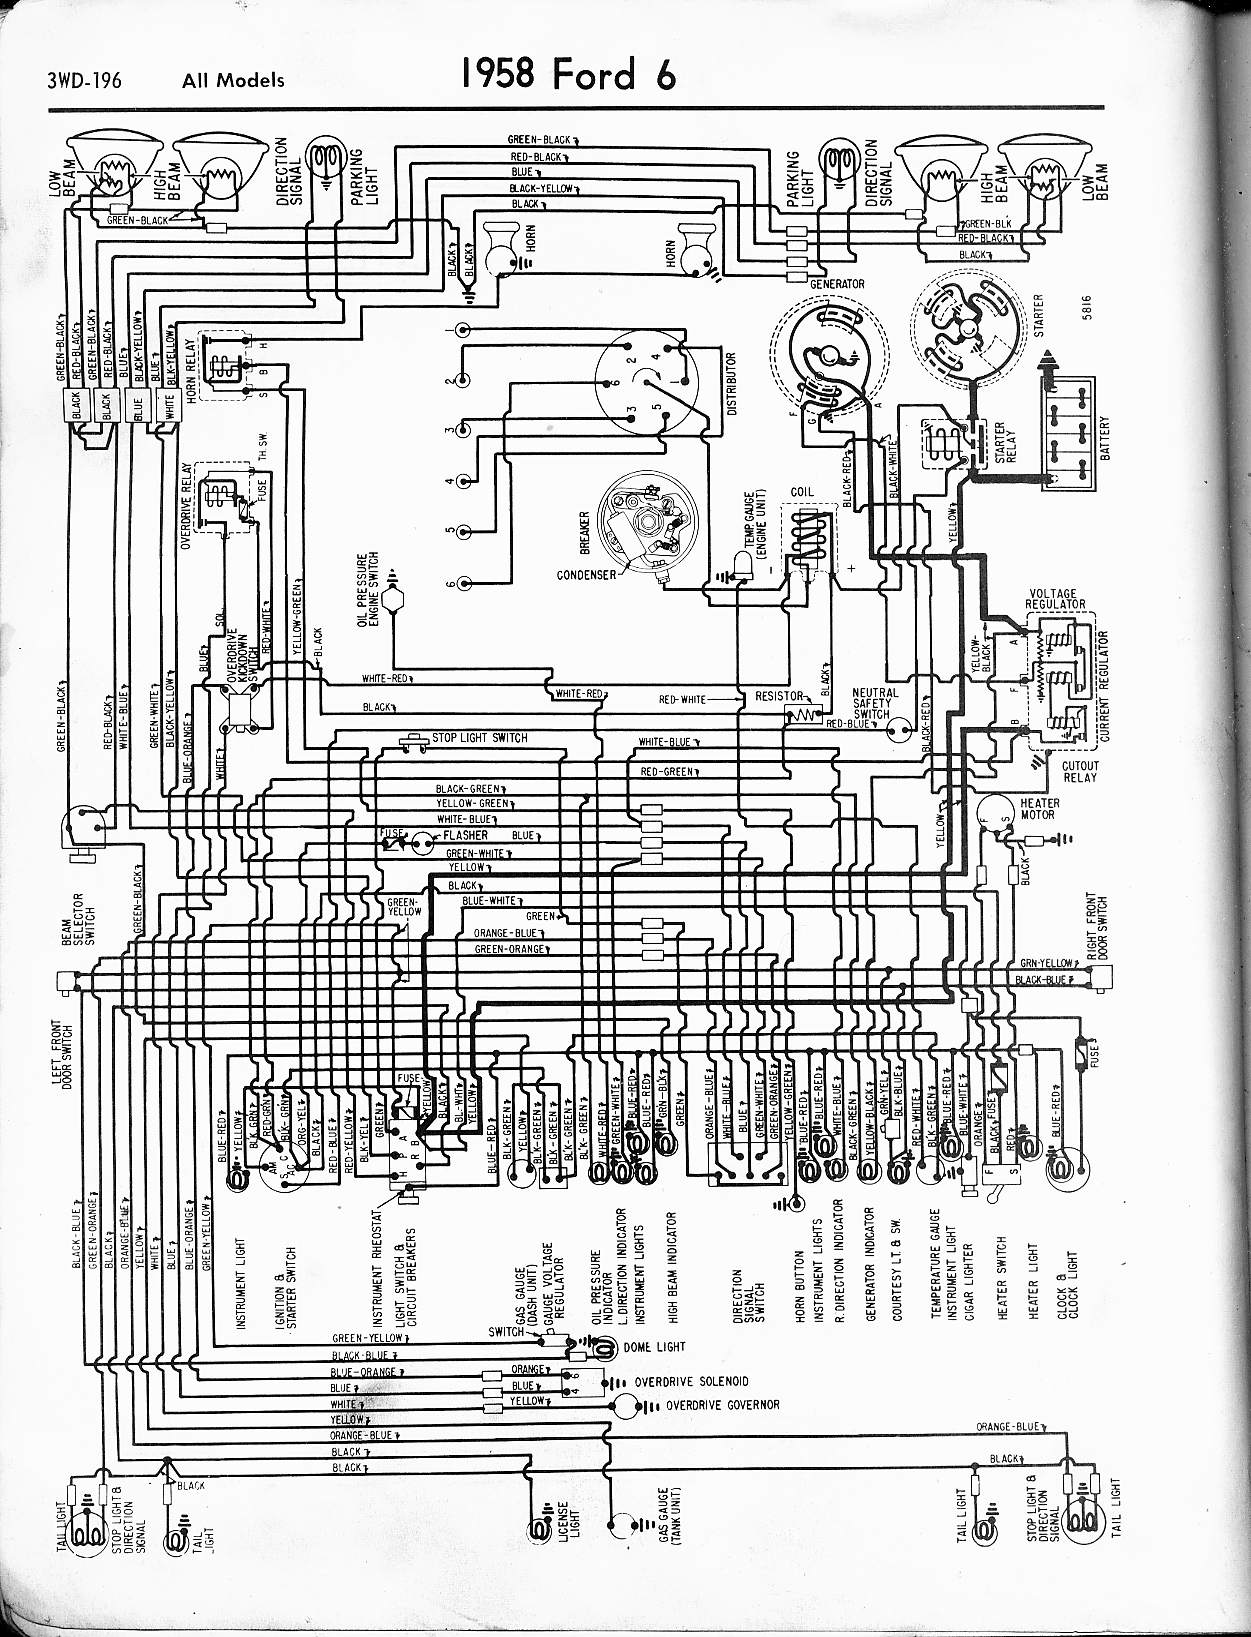 1966 Ford Pick Up Engine Wiring Diagram Real Diagrams Free Schematics U2022 Rh Parntesis Co 65 F100 73